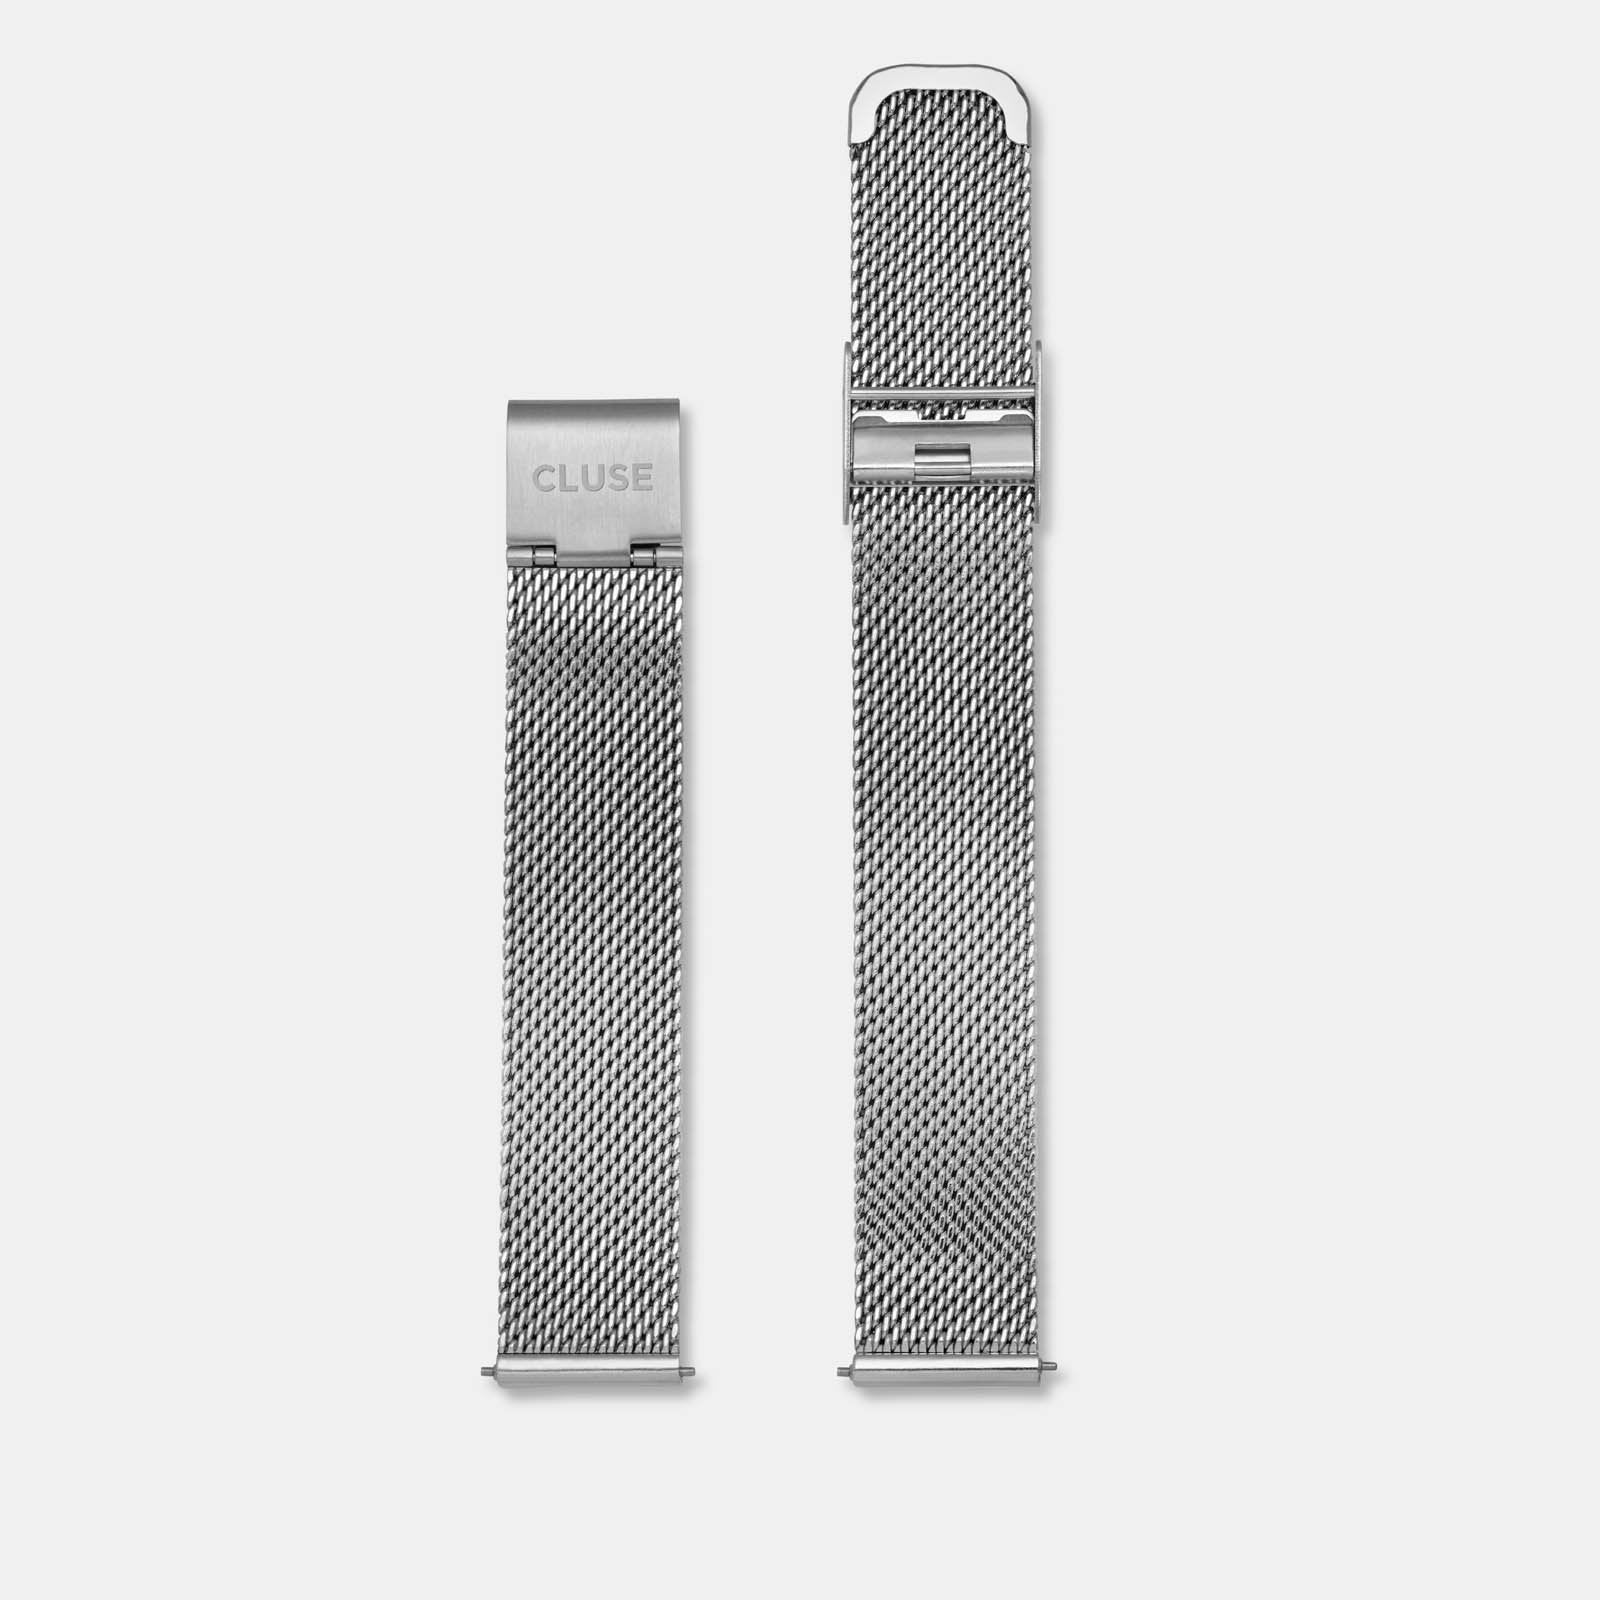 CLUSE 16 mm Strap Mesh Silver CLS345 - strap